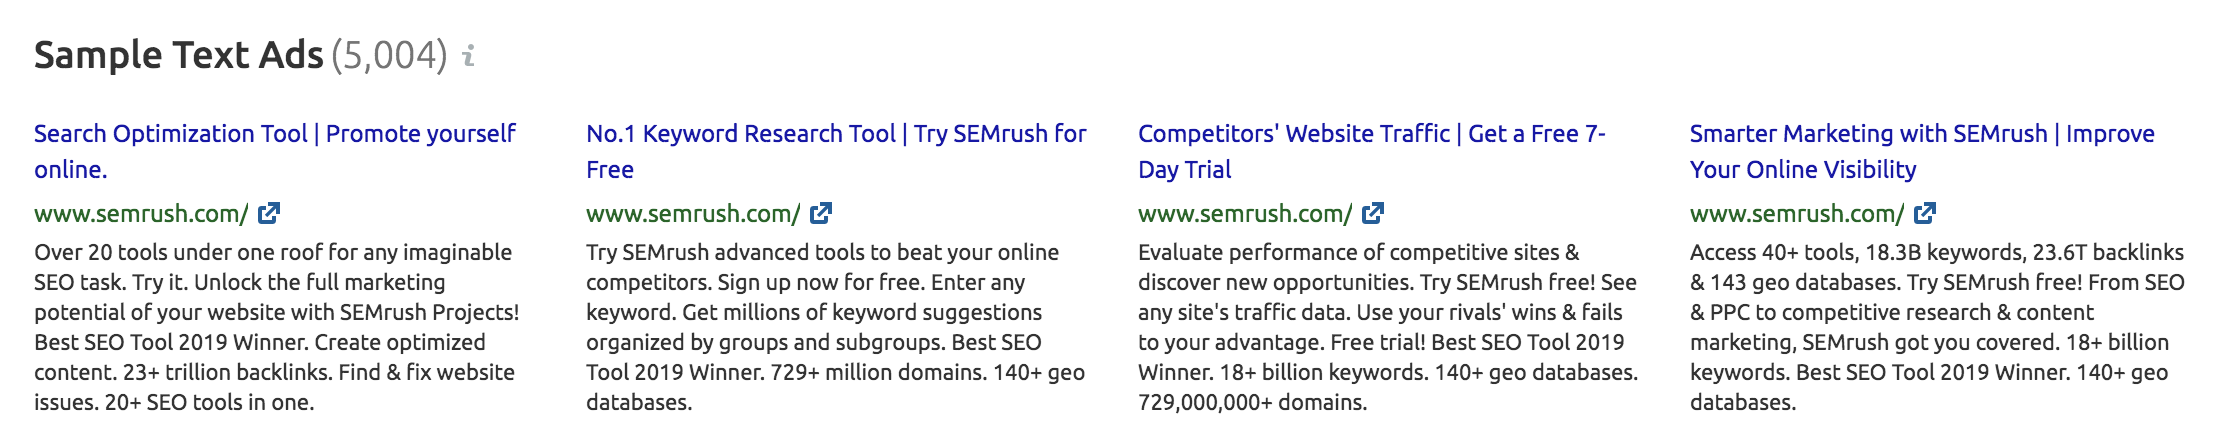 SEMrush PPC Keywords Example